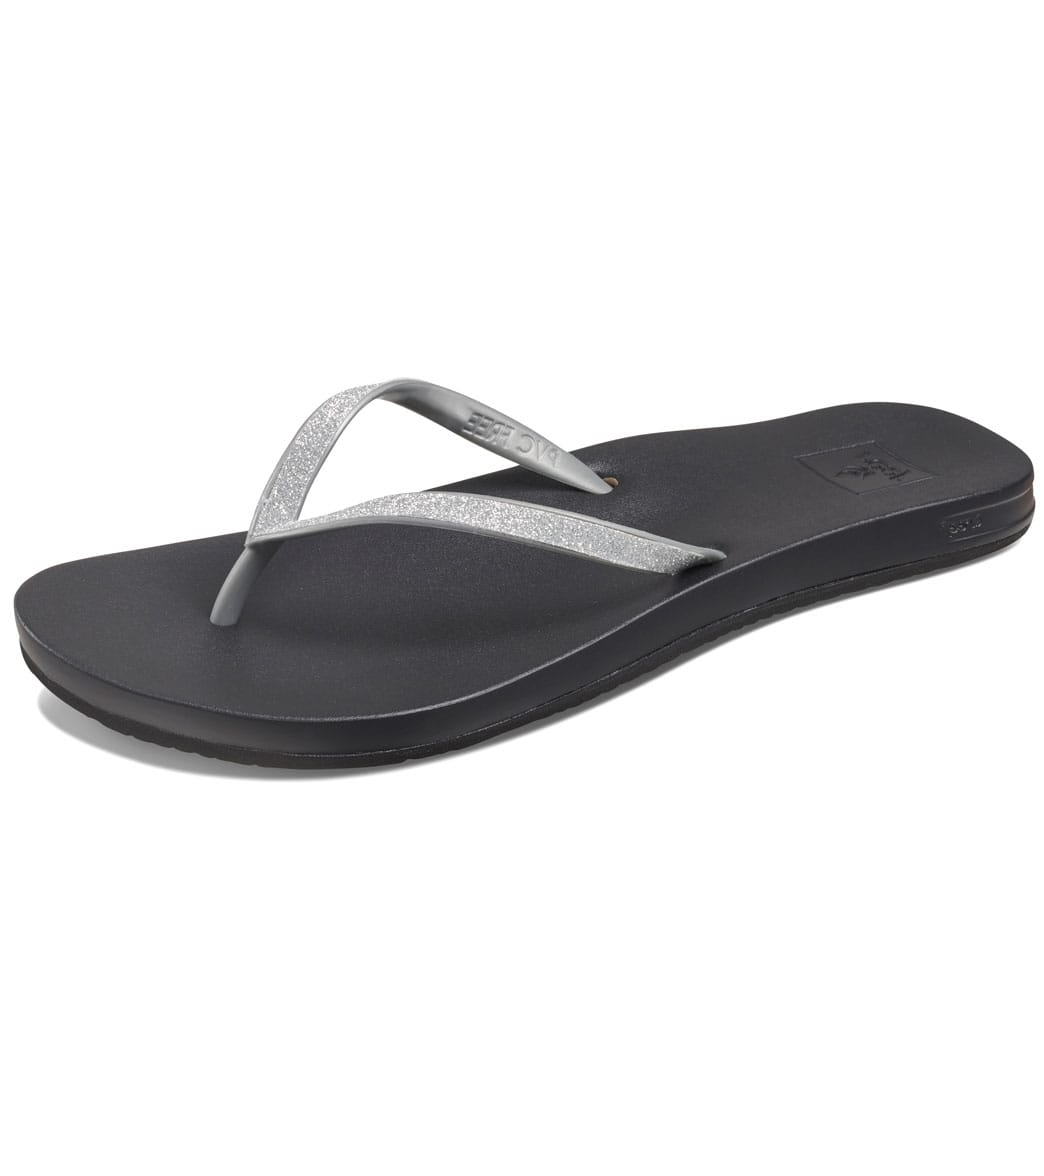 Flip At Bounce Stargazer Reef Women's Cushion Flop 1wnx1ZIOWR